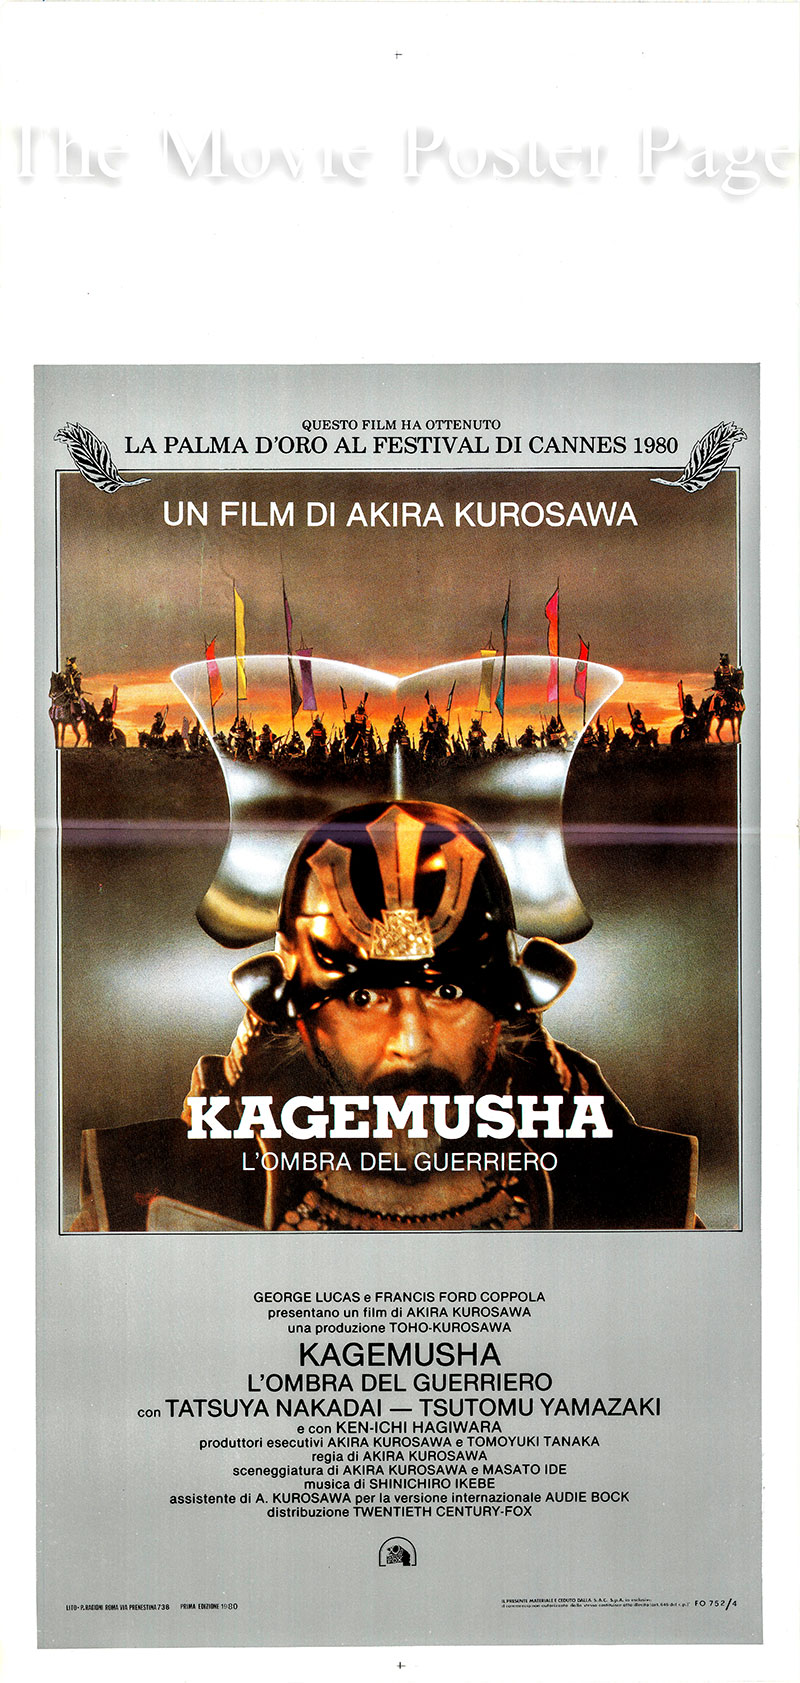 Pictured is an Italian locandina poster for the 1980 Akira Kurosawa film Kagemusha written by Masato Ide and Akira Kurosawa and starring Tatsuya Nakadai as the <i>kagemusha</i> [political decoy].  Plot summary:  In Medieval Japan a powerful warlord dies and a poor look-alike thief who had been recruited to impersonate him is left to carry on in his place.  The thief is not up to the task and clashes with the spirit of the dead warlord.